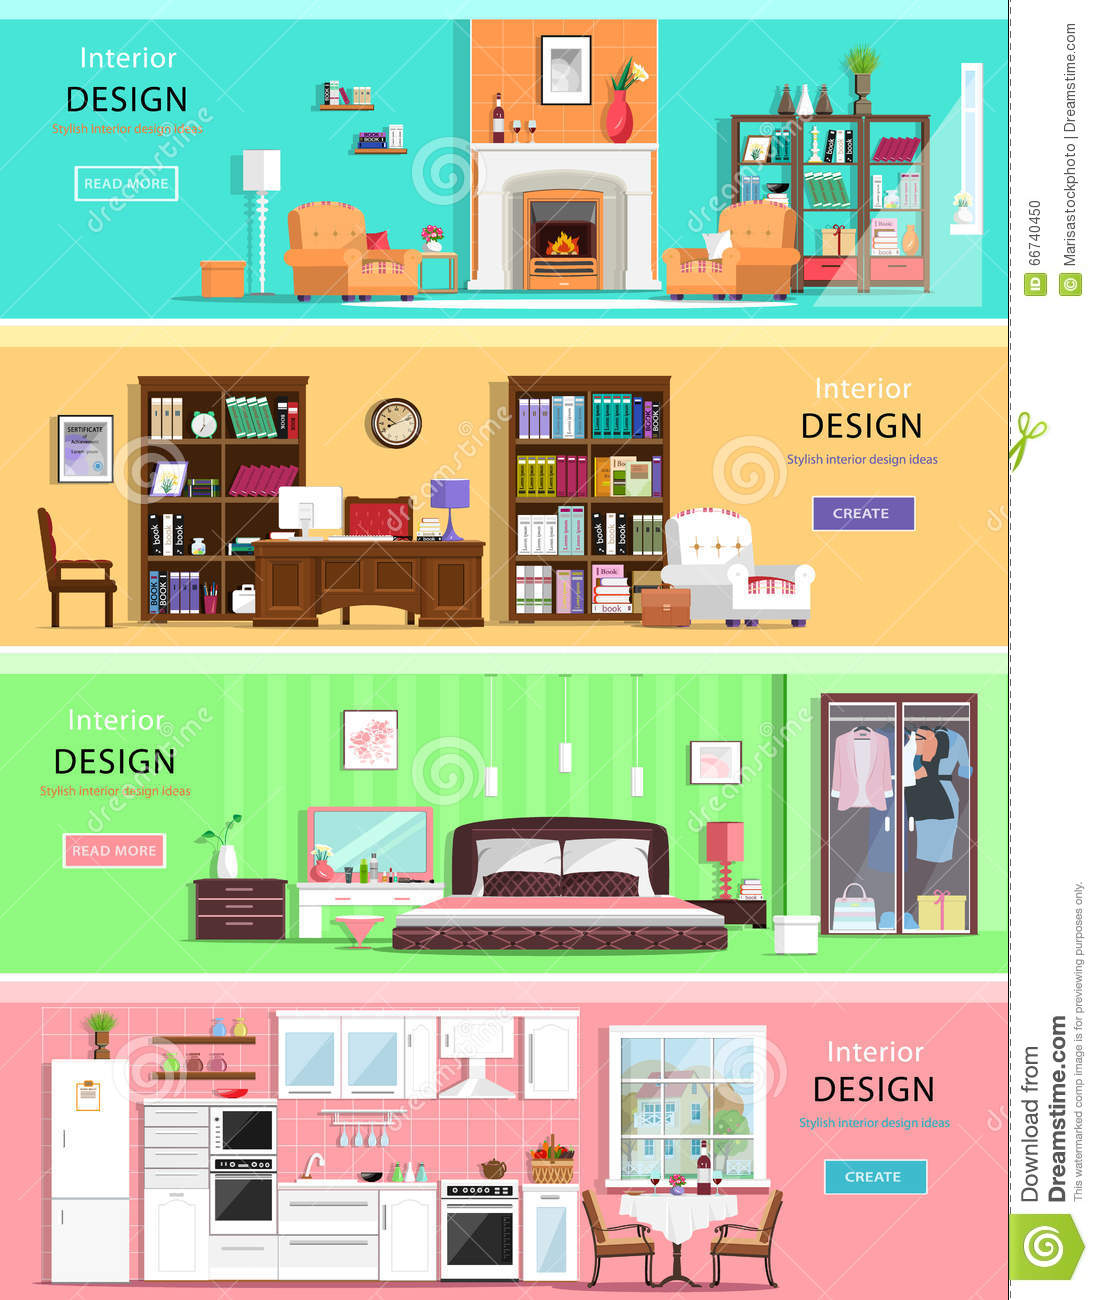 ... Room, Bedroom, Kitchen And Home Office. Stock Vector - Image: 66740450